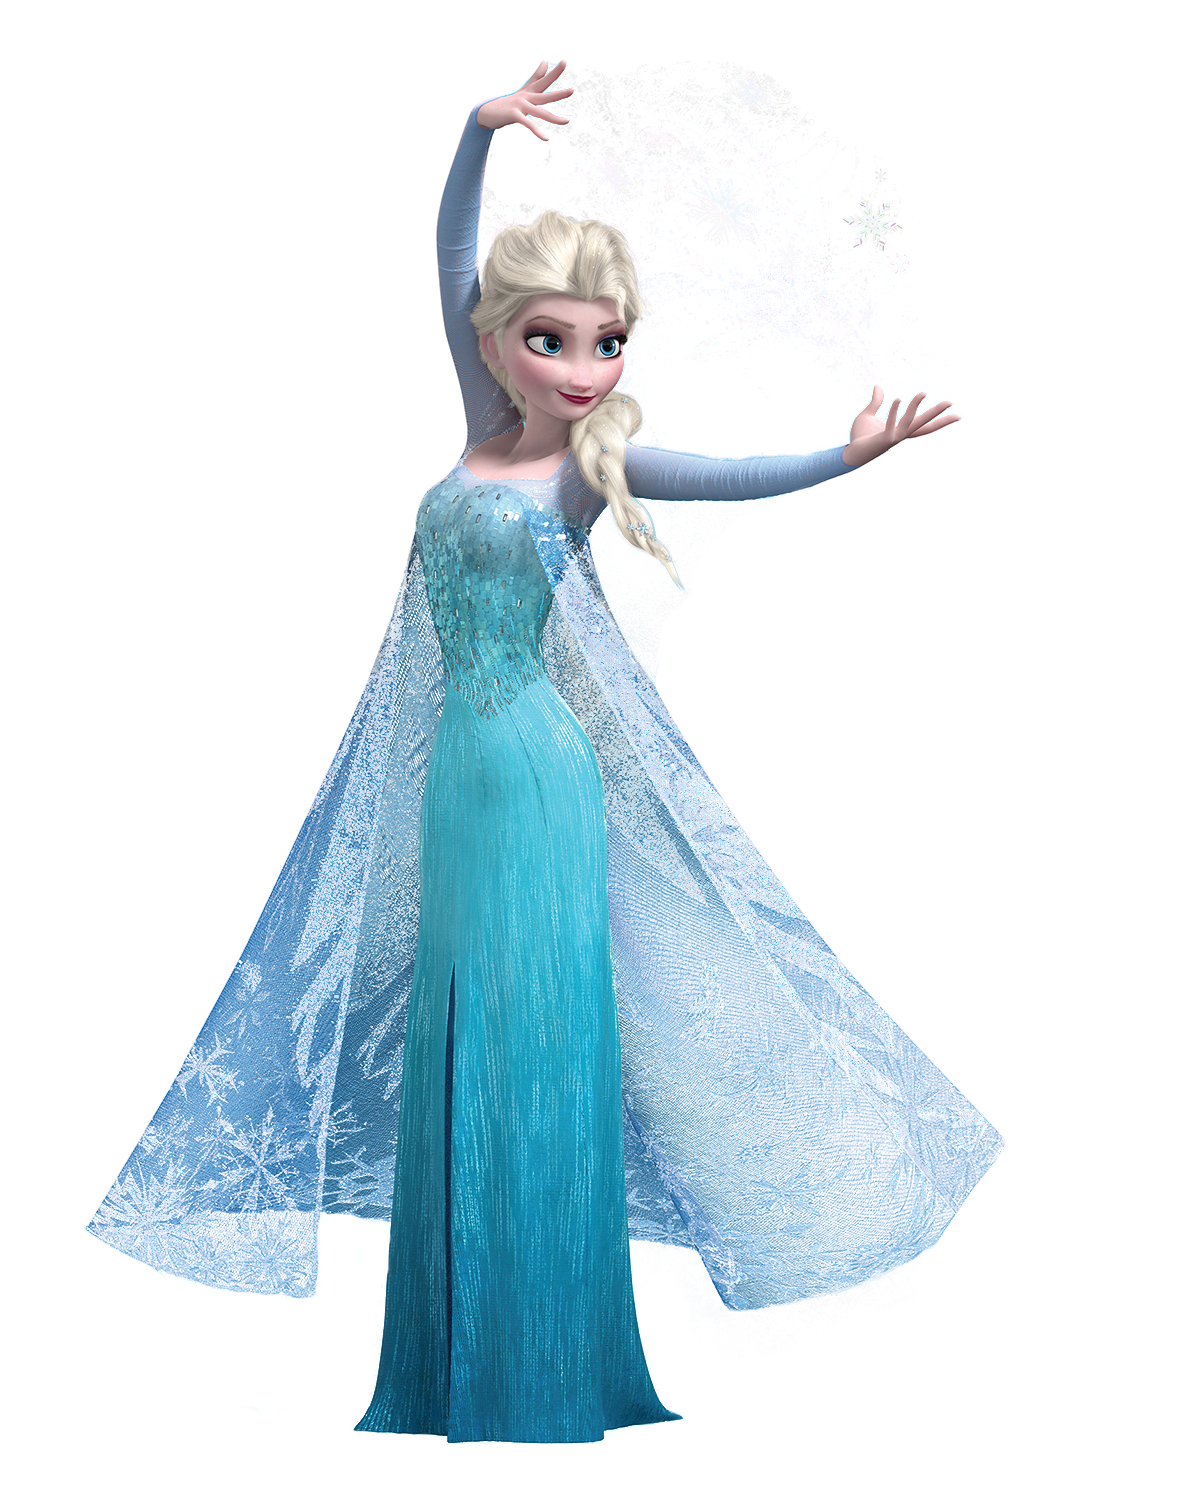 Elsa Frozen Disney 03